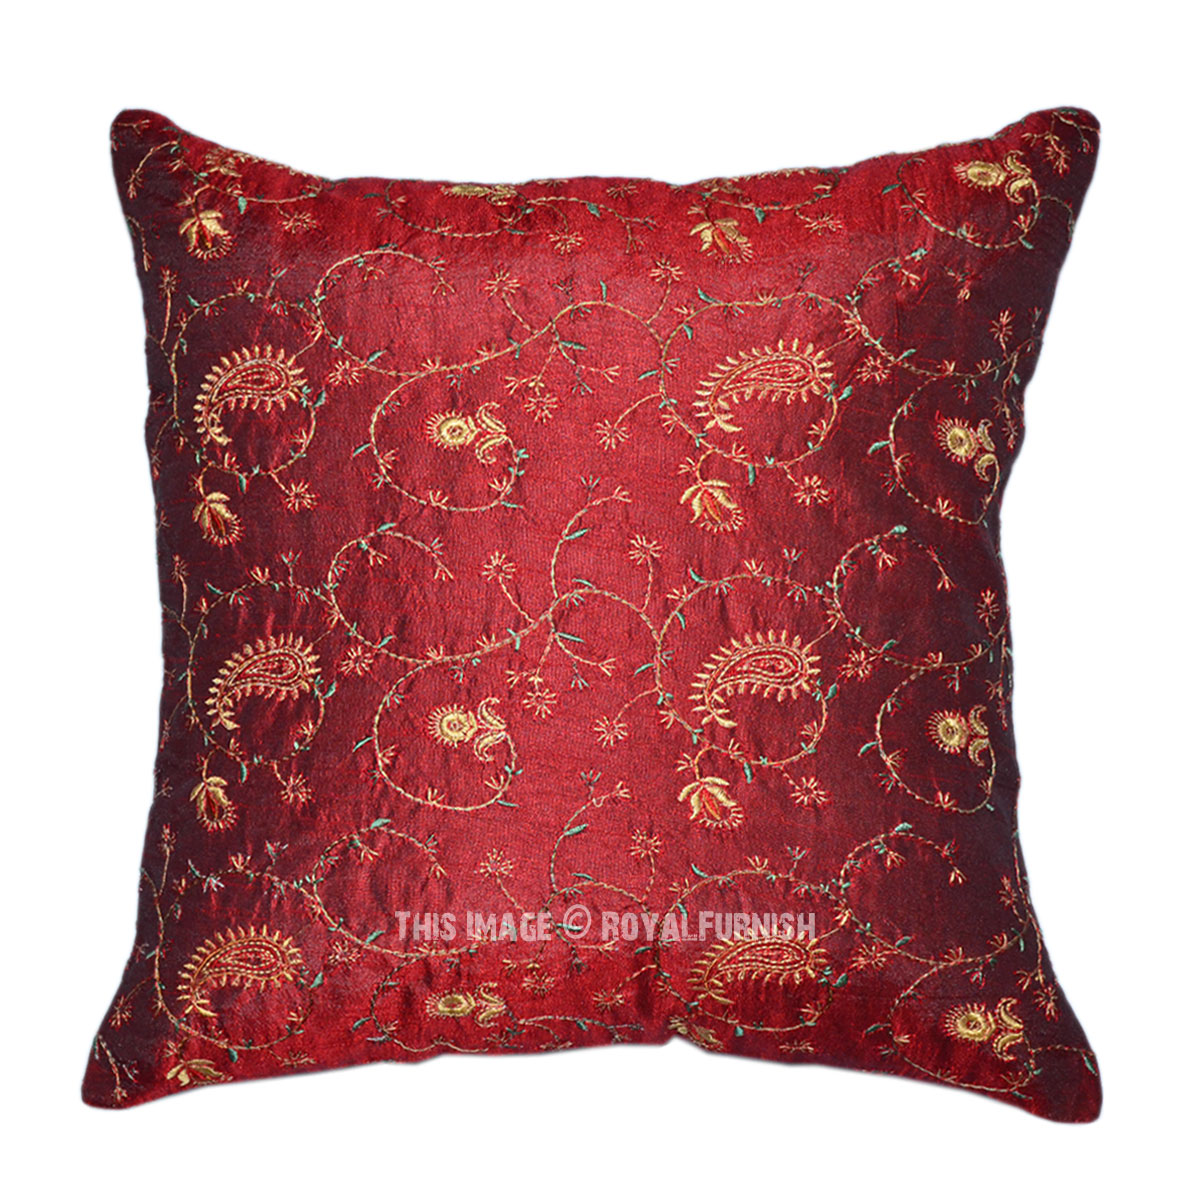 Red Silk Decorative Pillows : Red Indian Floral Embroidered Decorative Silk Throw Pillow Case - RoyalFurnish.com